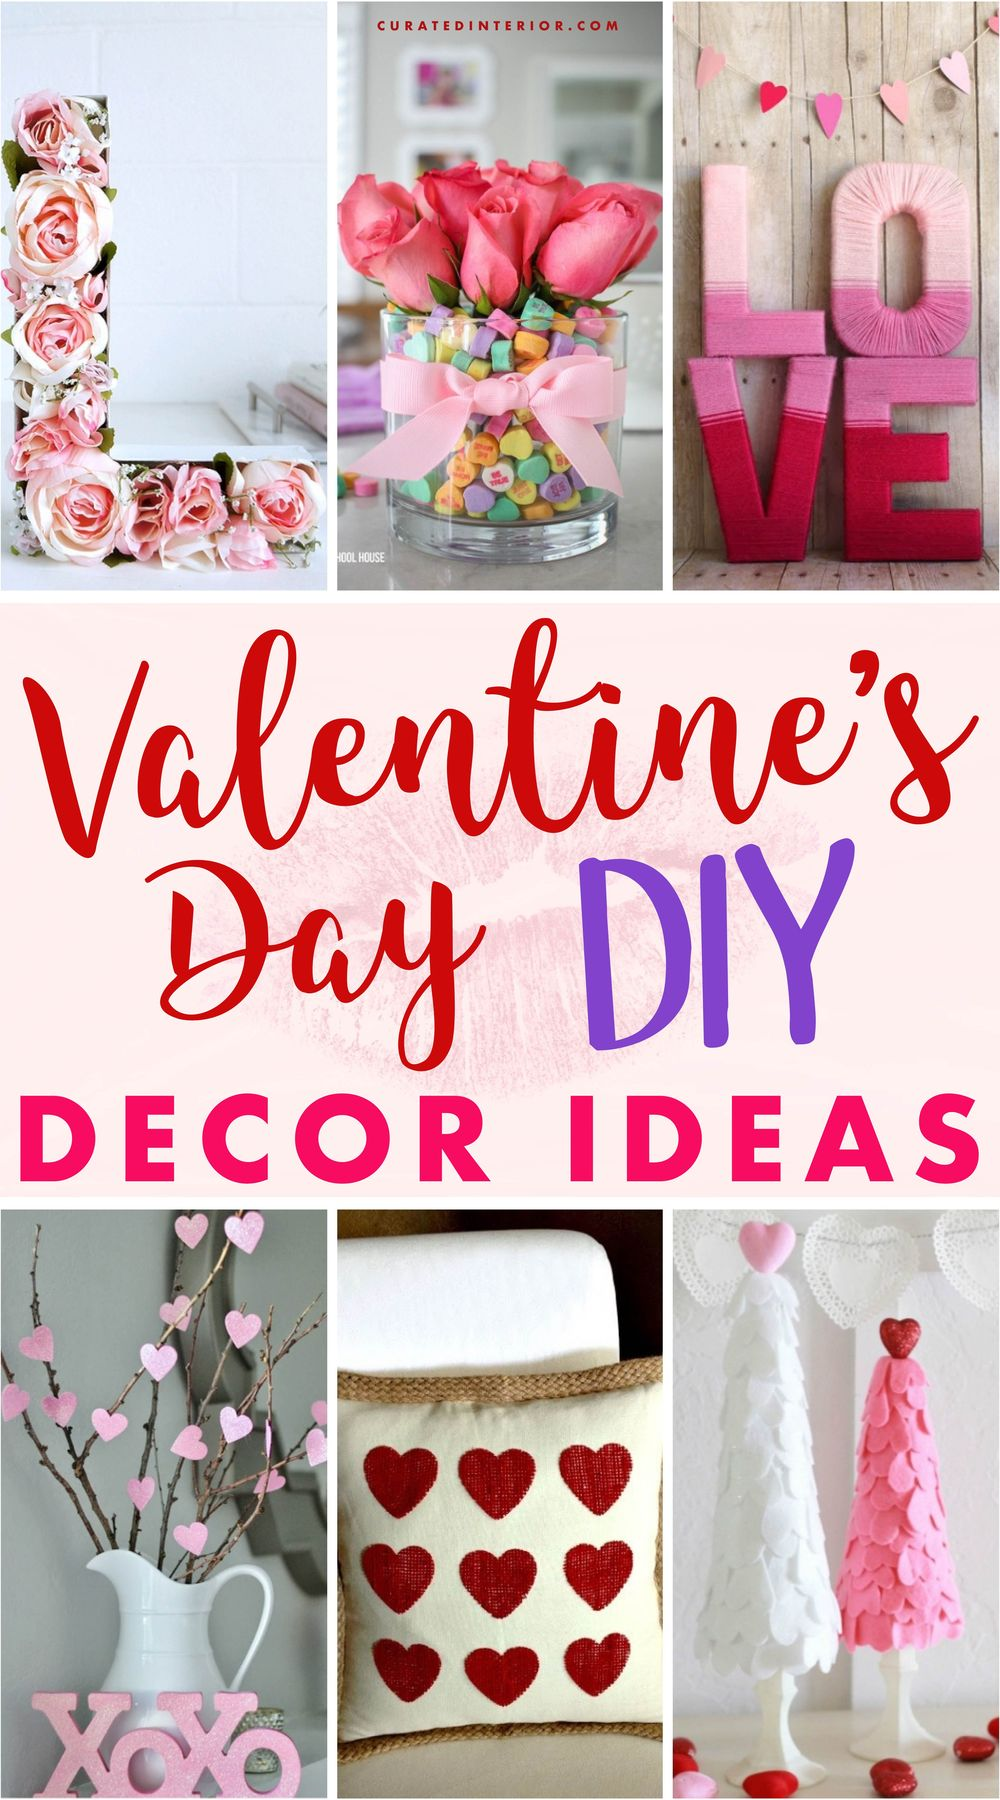 Valentine's Day DIY Decor Ideas